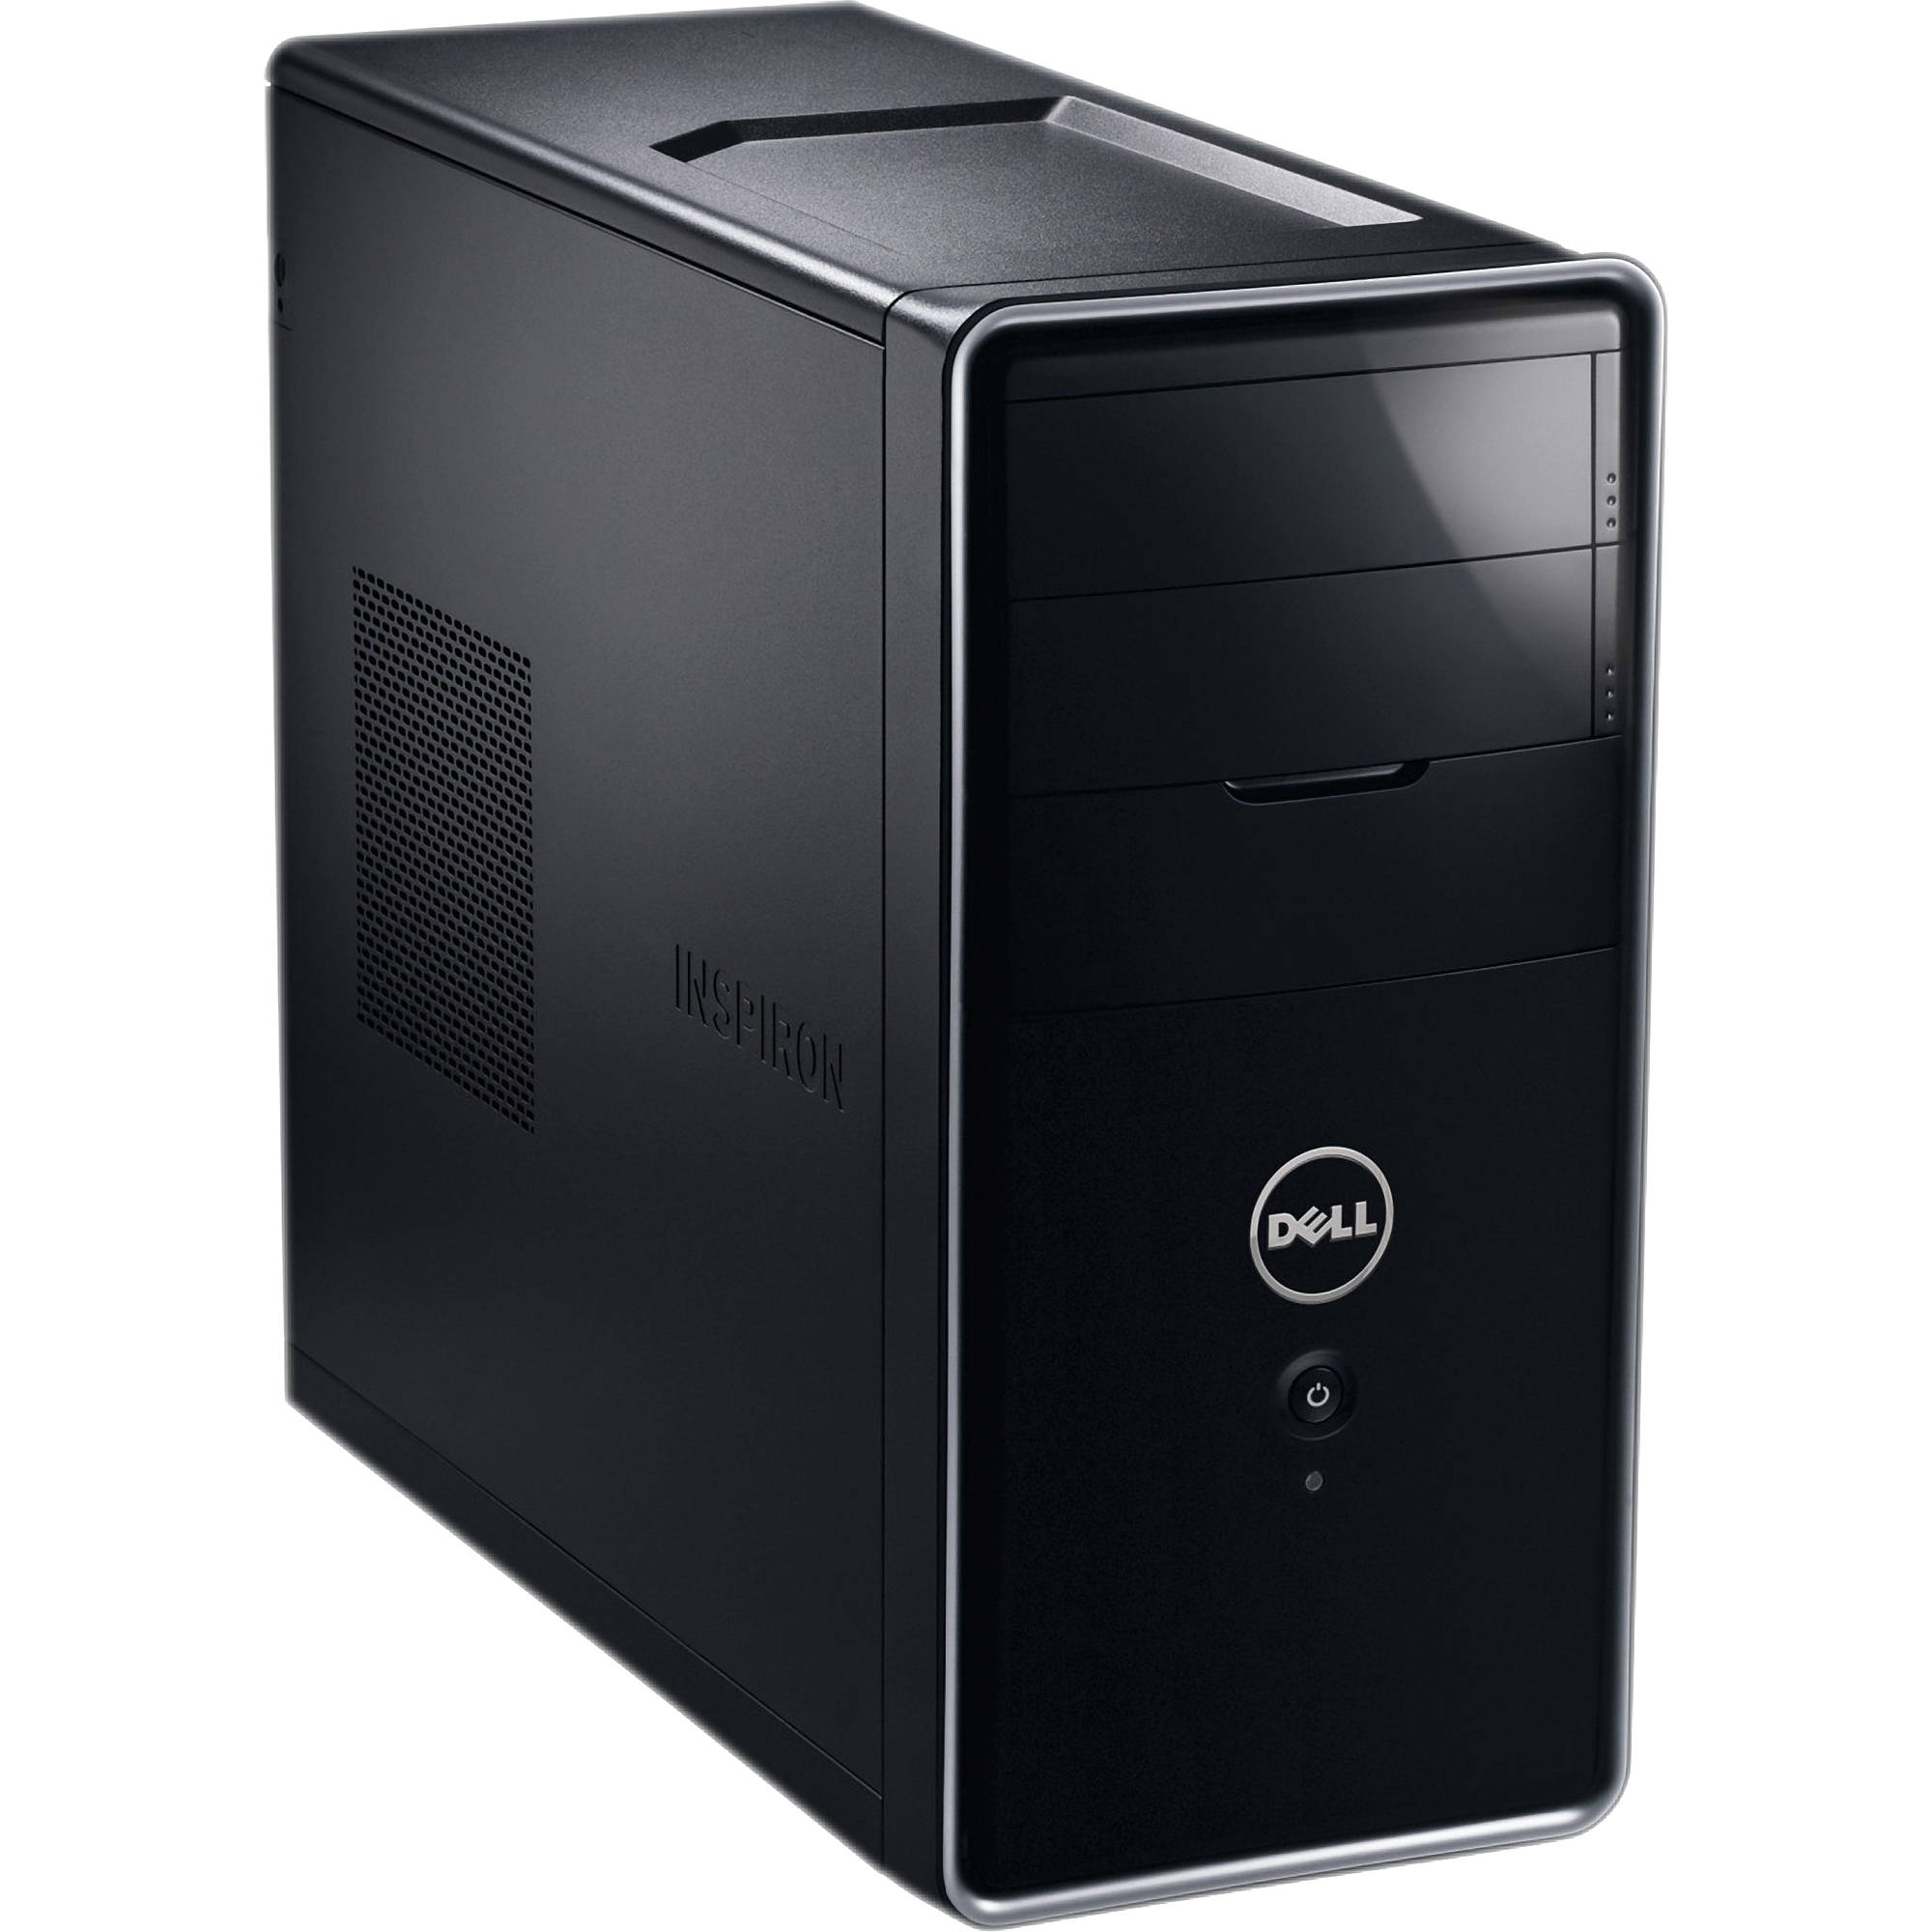 Dell Inspiron 570 Desktop Nvidia NV G310 VGA Windows 8 X64